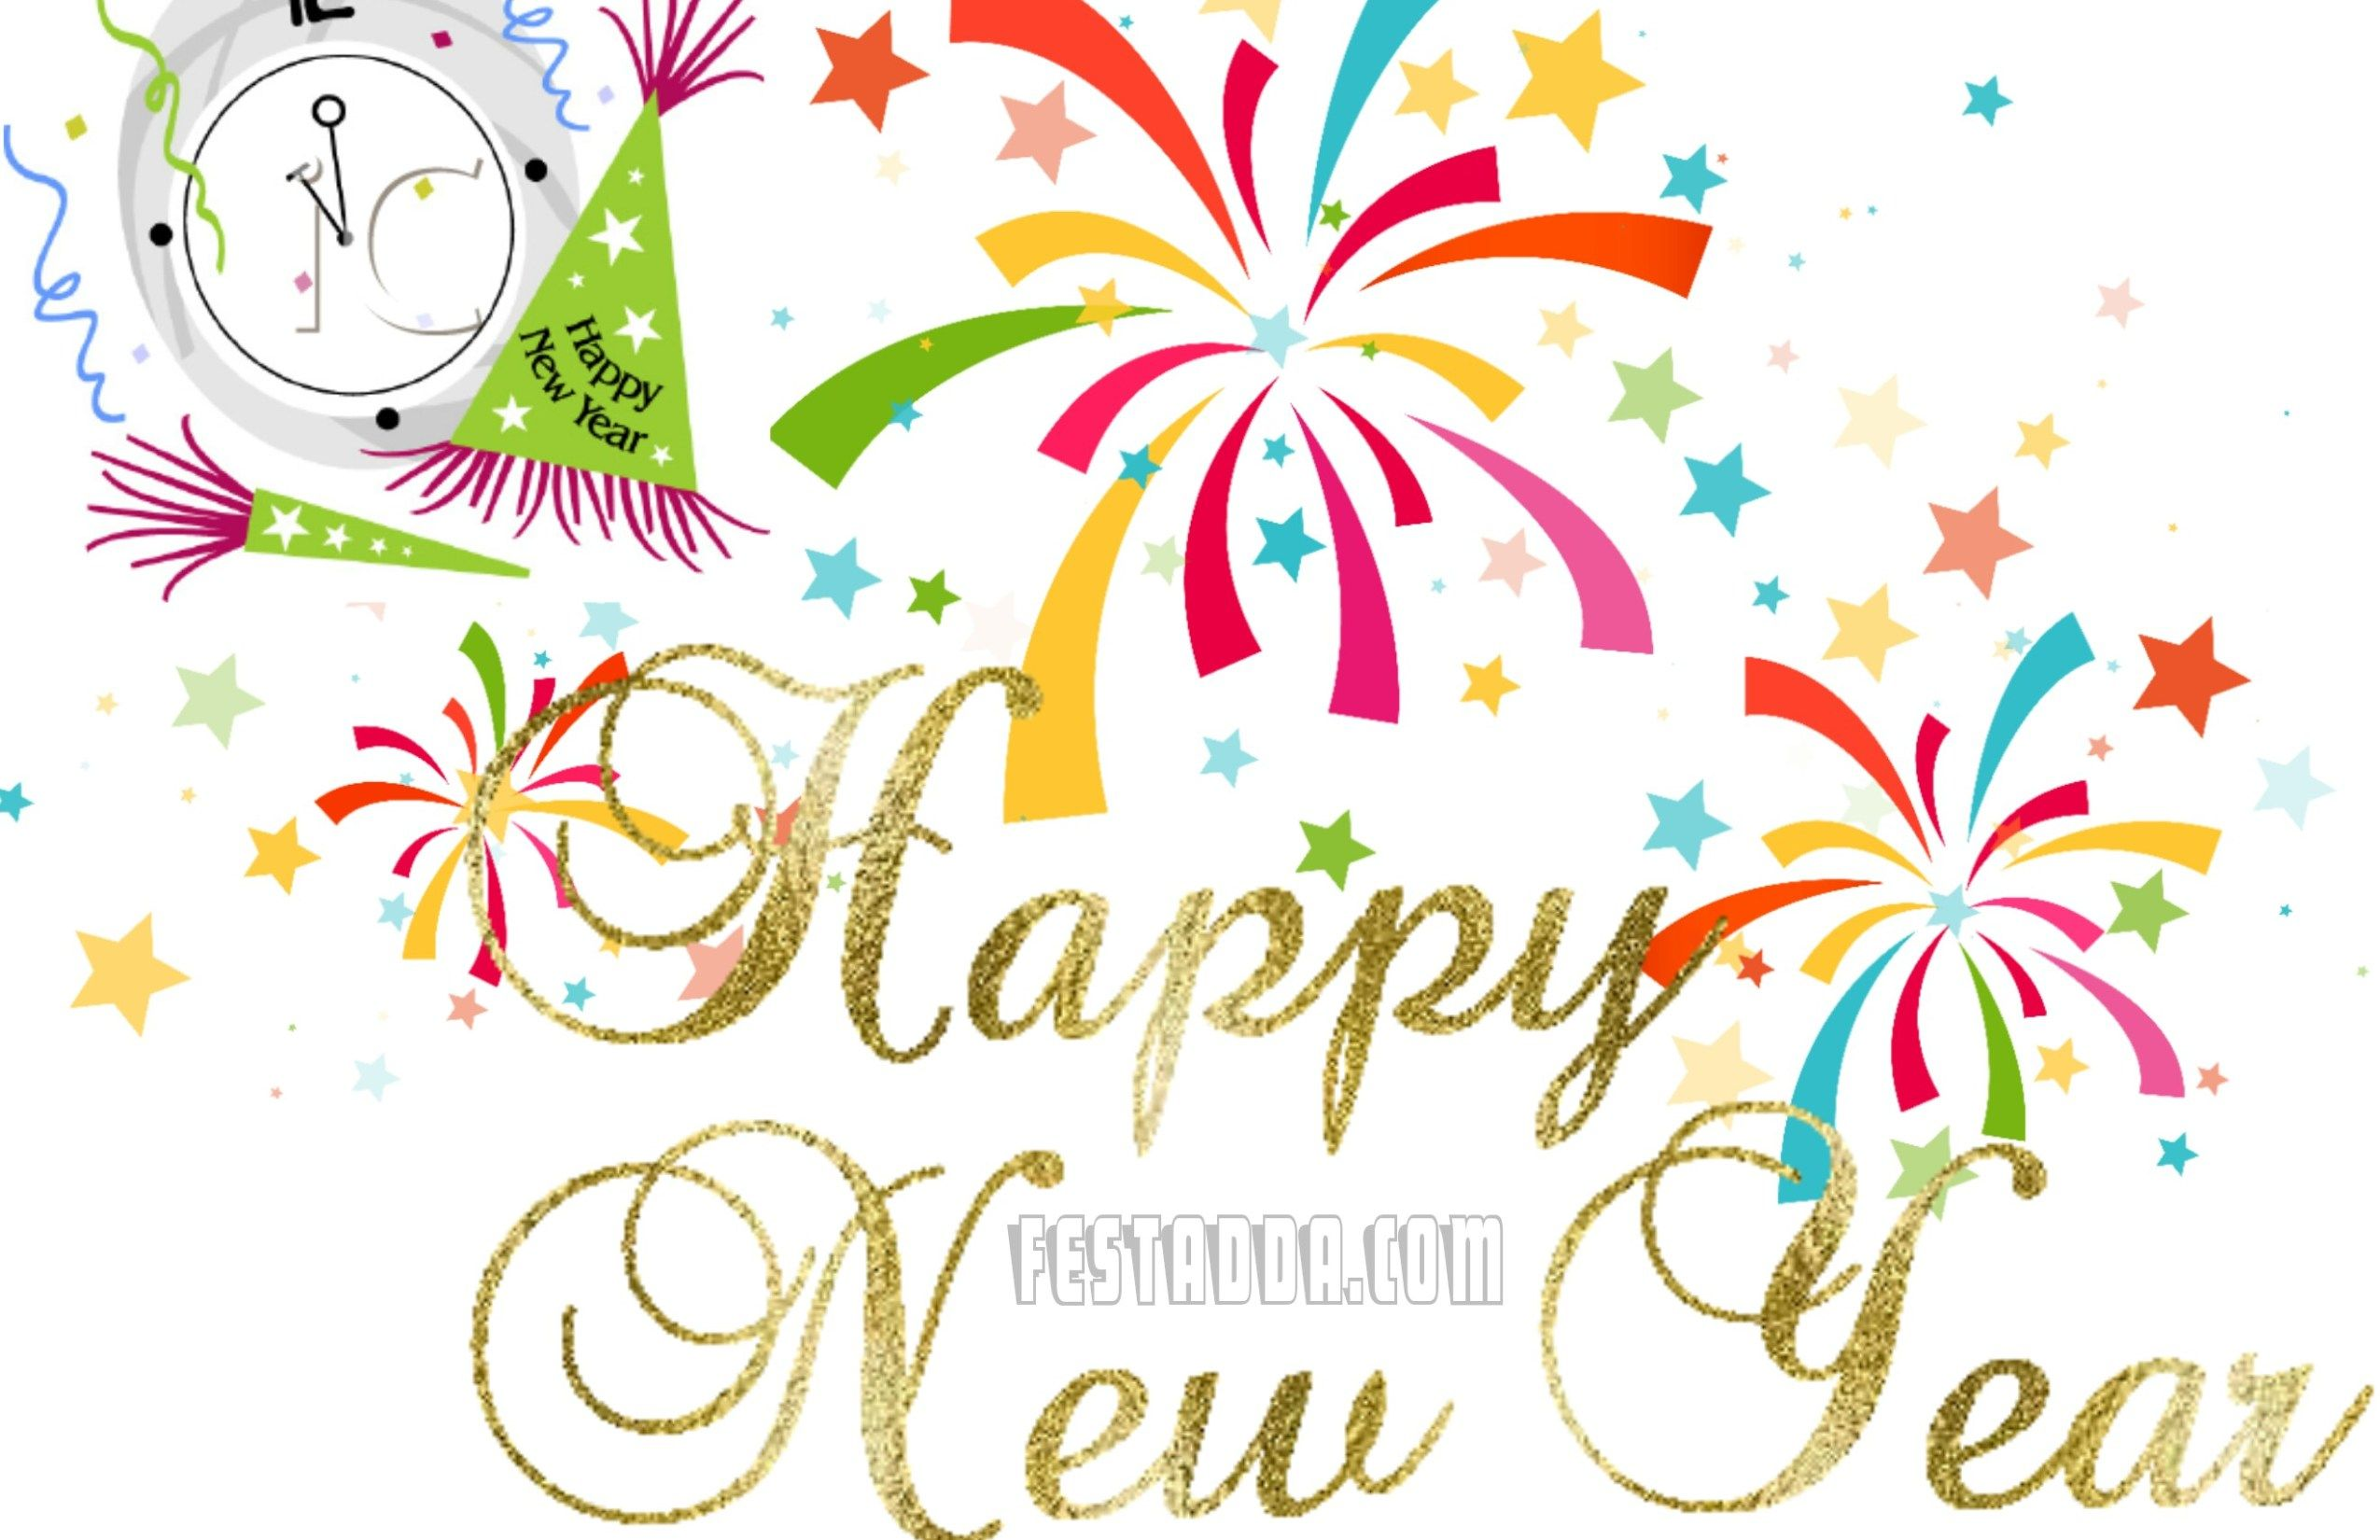 Free Happy New Year Clipart 2019 Images Pics Photos Wallpapers Full.